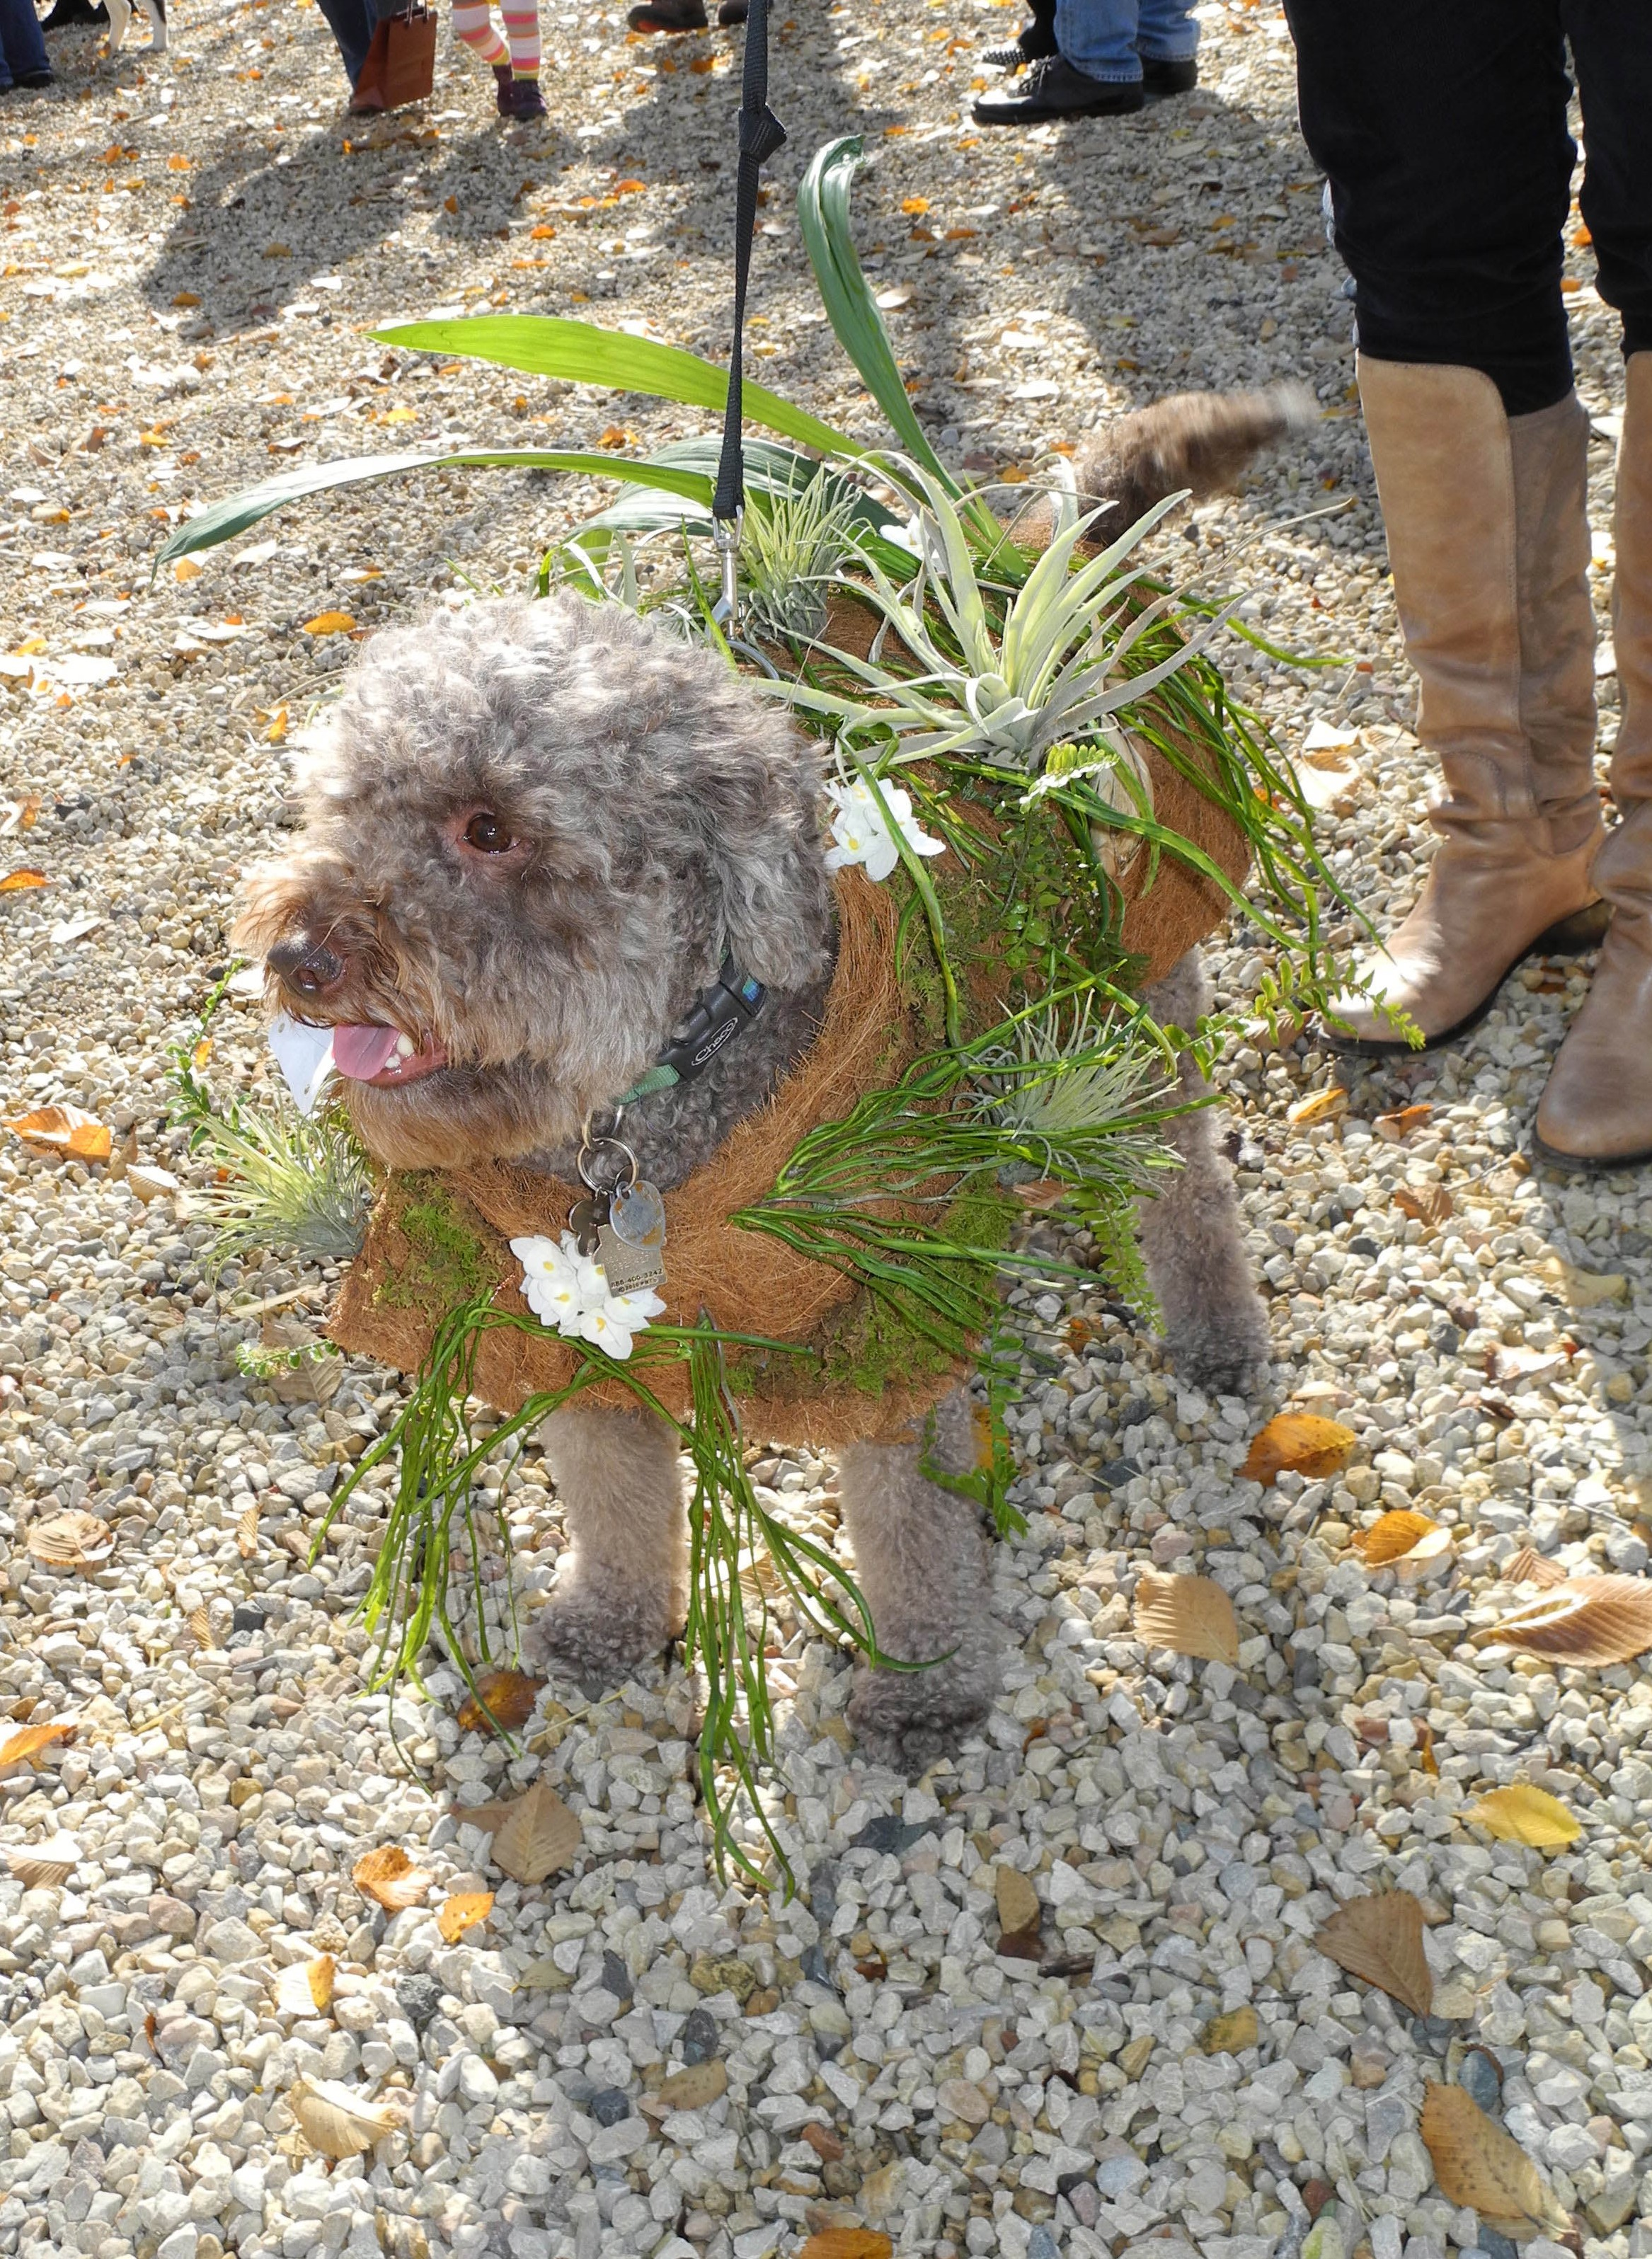 PHOTO: Dog is wearing a special coat that holds small house plants so he can take them for a walk